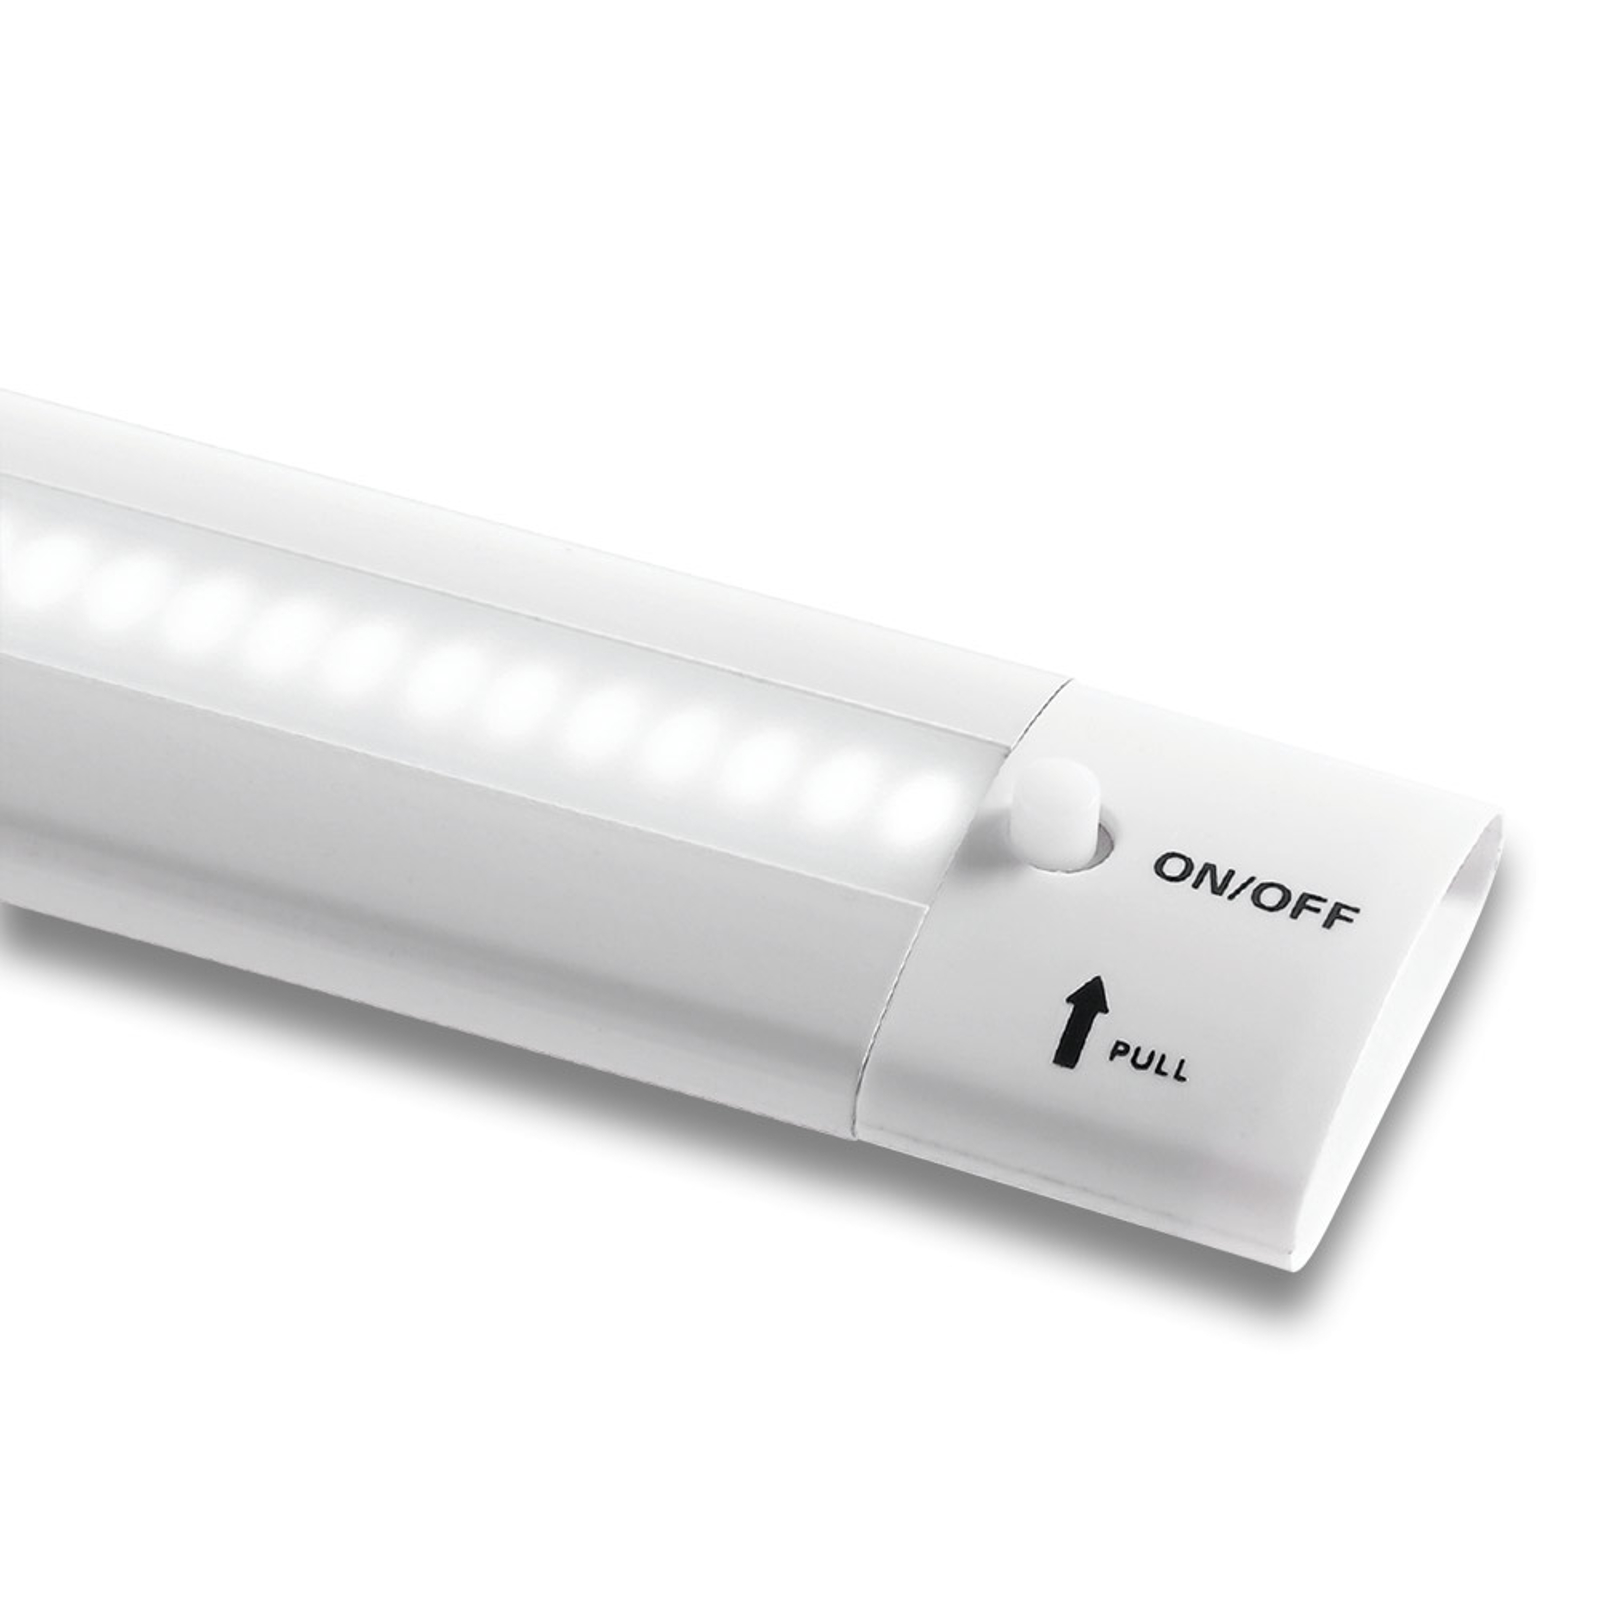 LED 16W meubelonderbouwlamp Galway 6690, wit